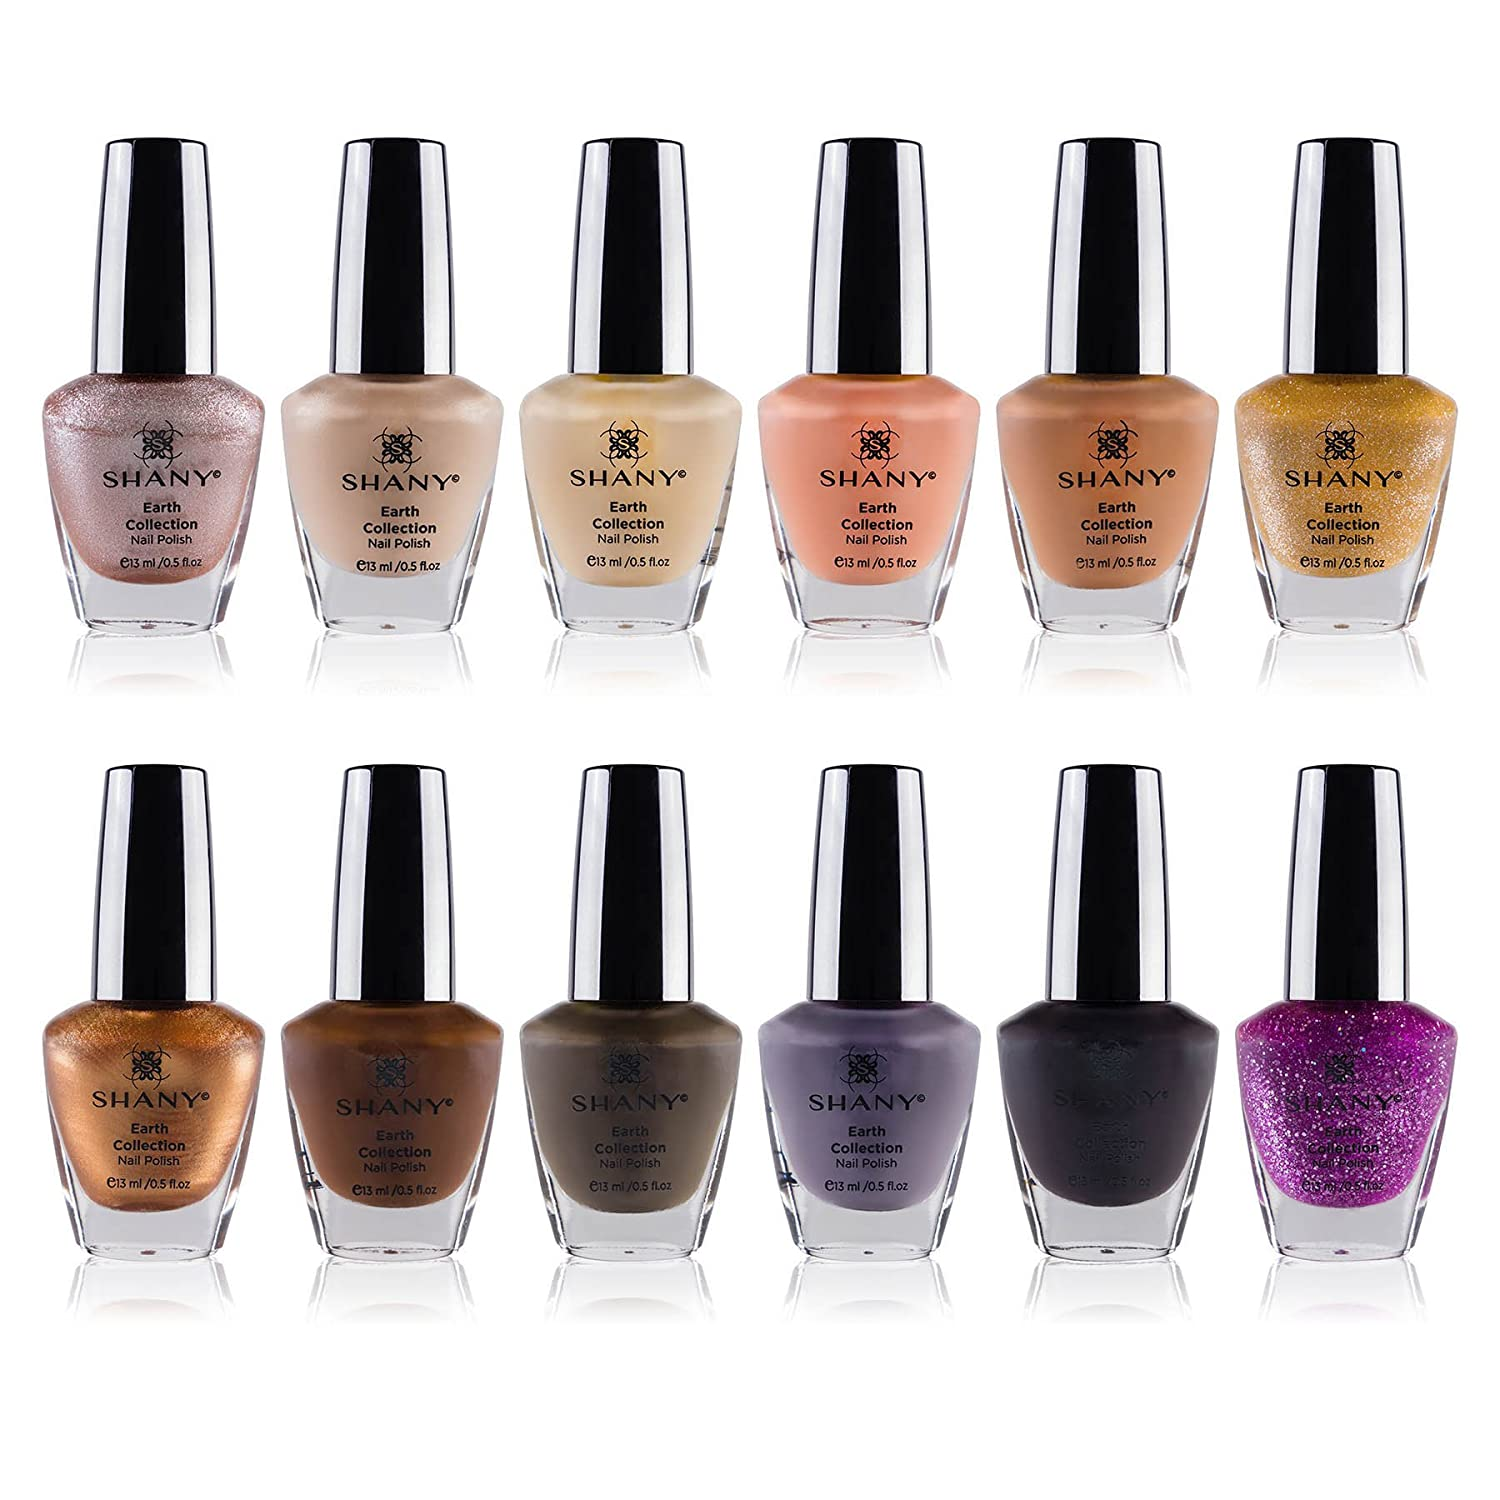 Amazon.com : SHANY Nail Polish Set - 12 Nude and Natural Shades in ...